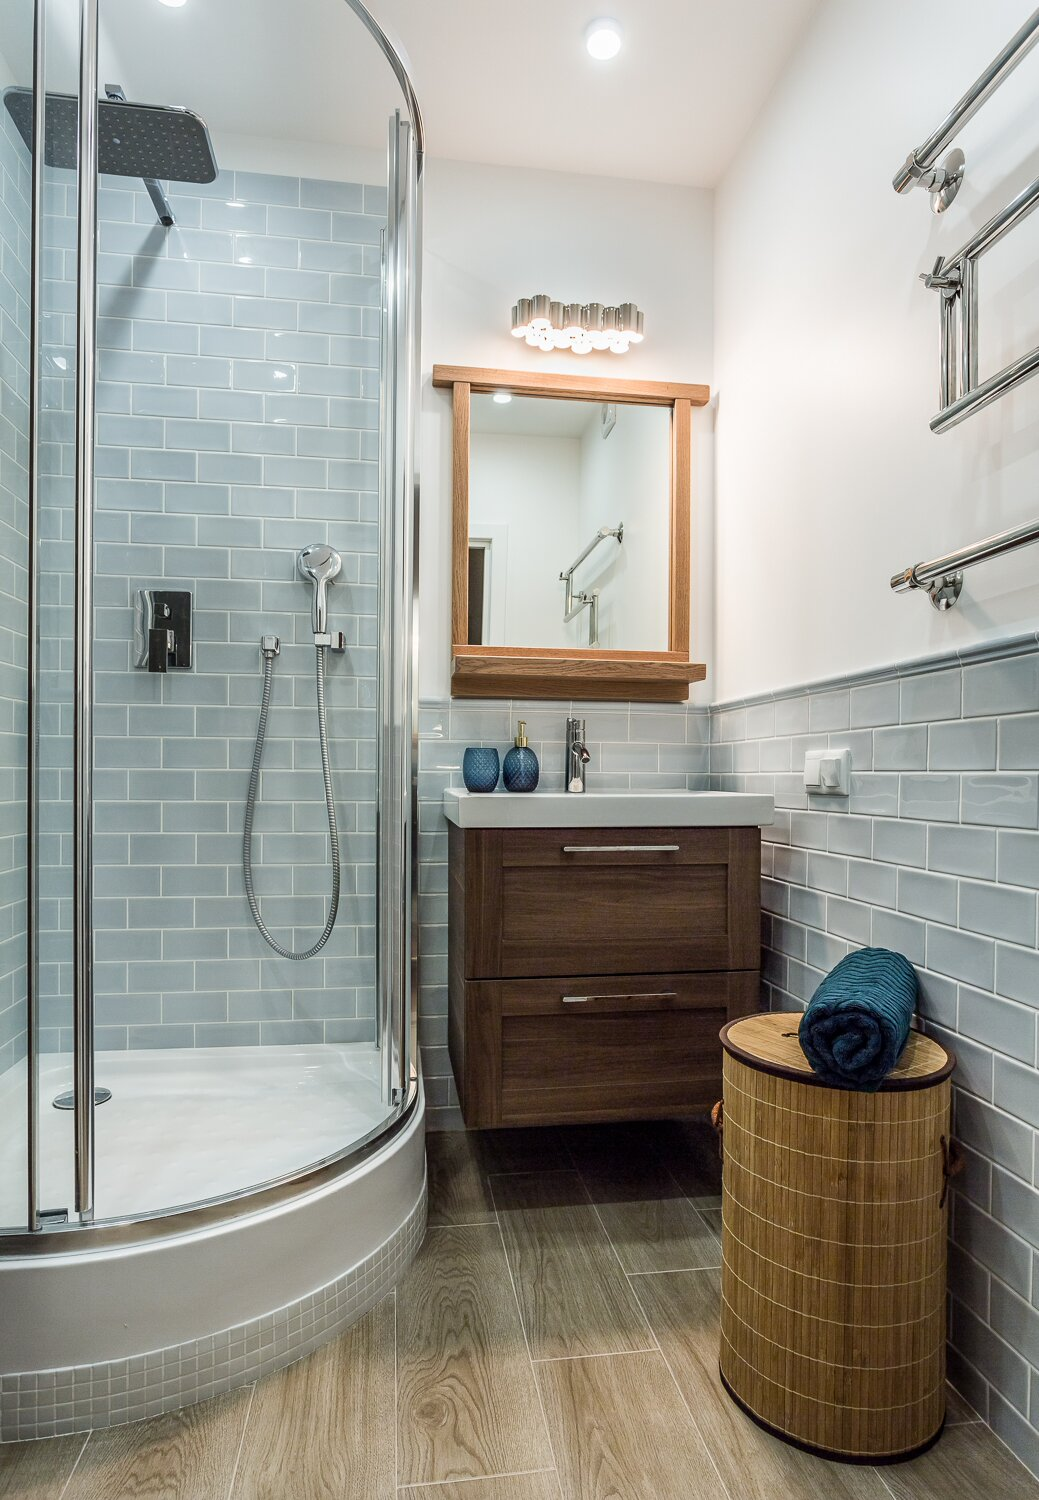 Have Question About Bathroom Renovation? Ask Me In The Comments.